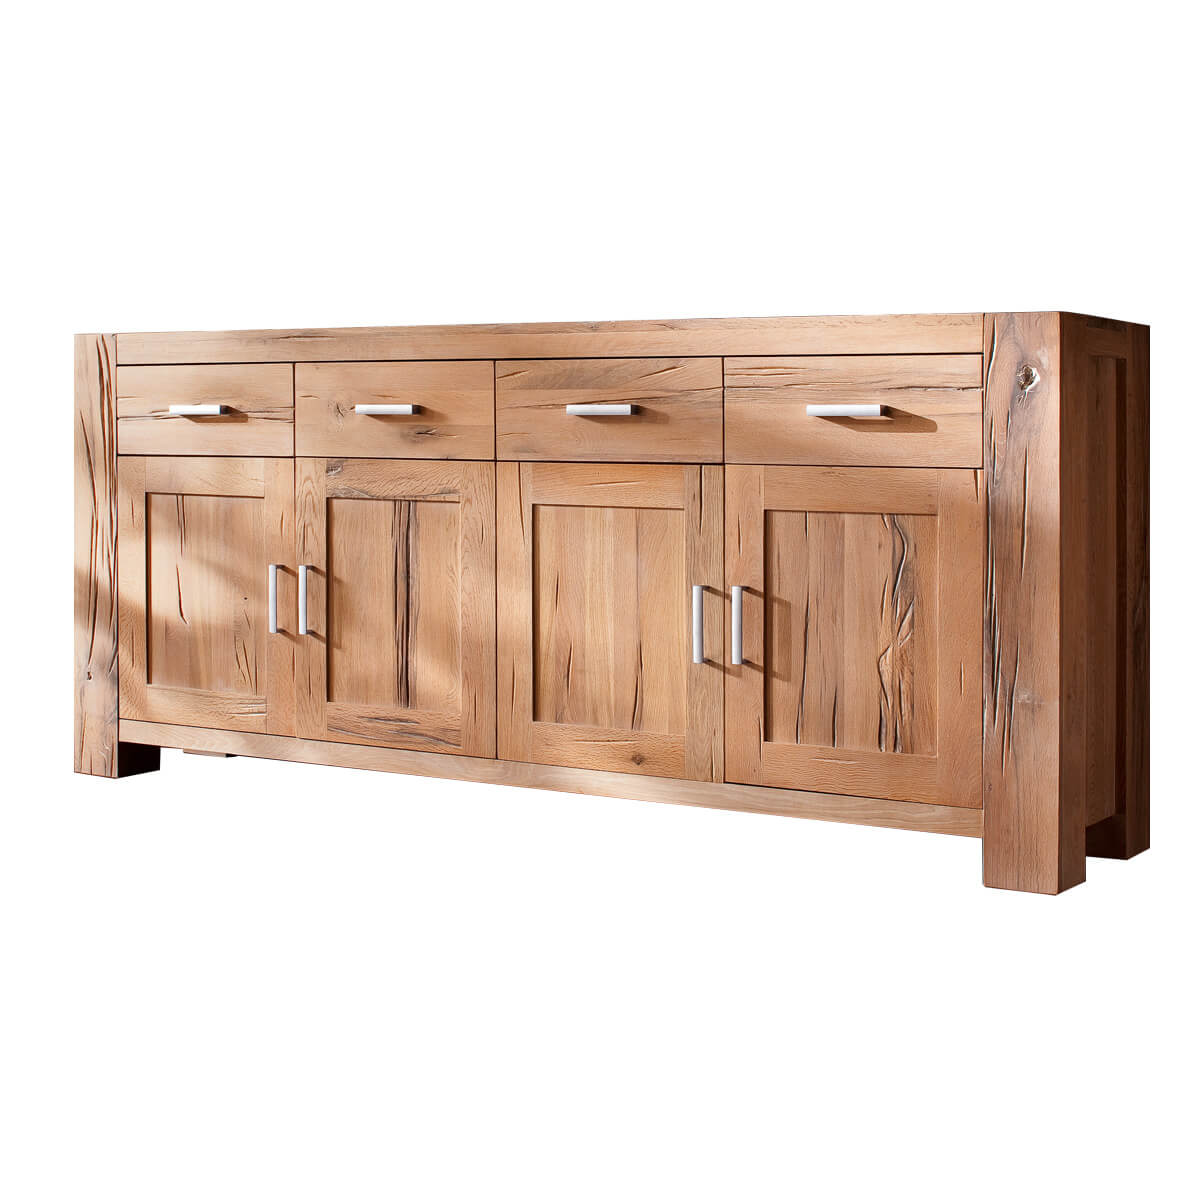 sideboard eiche massiv kommode wildeiche natur ge lt 219 x 94 cm balkeneiche ebay. Black Bedroom Furniture Sets. Home Design Ideas